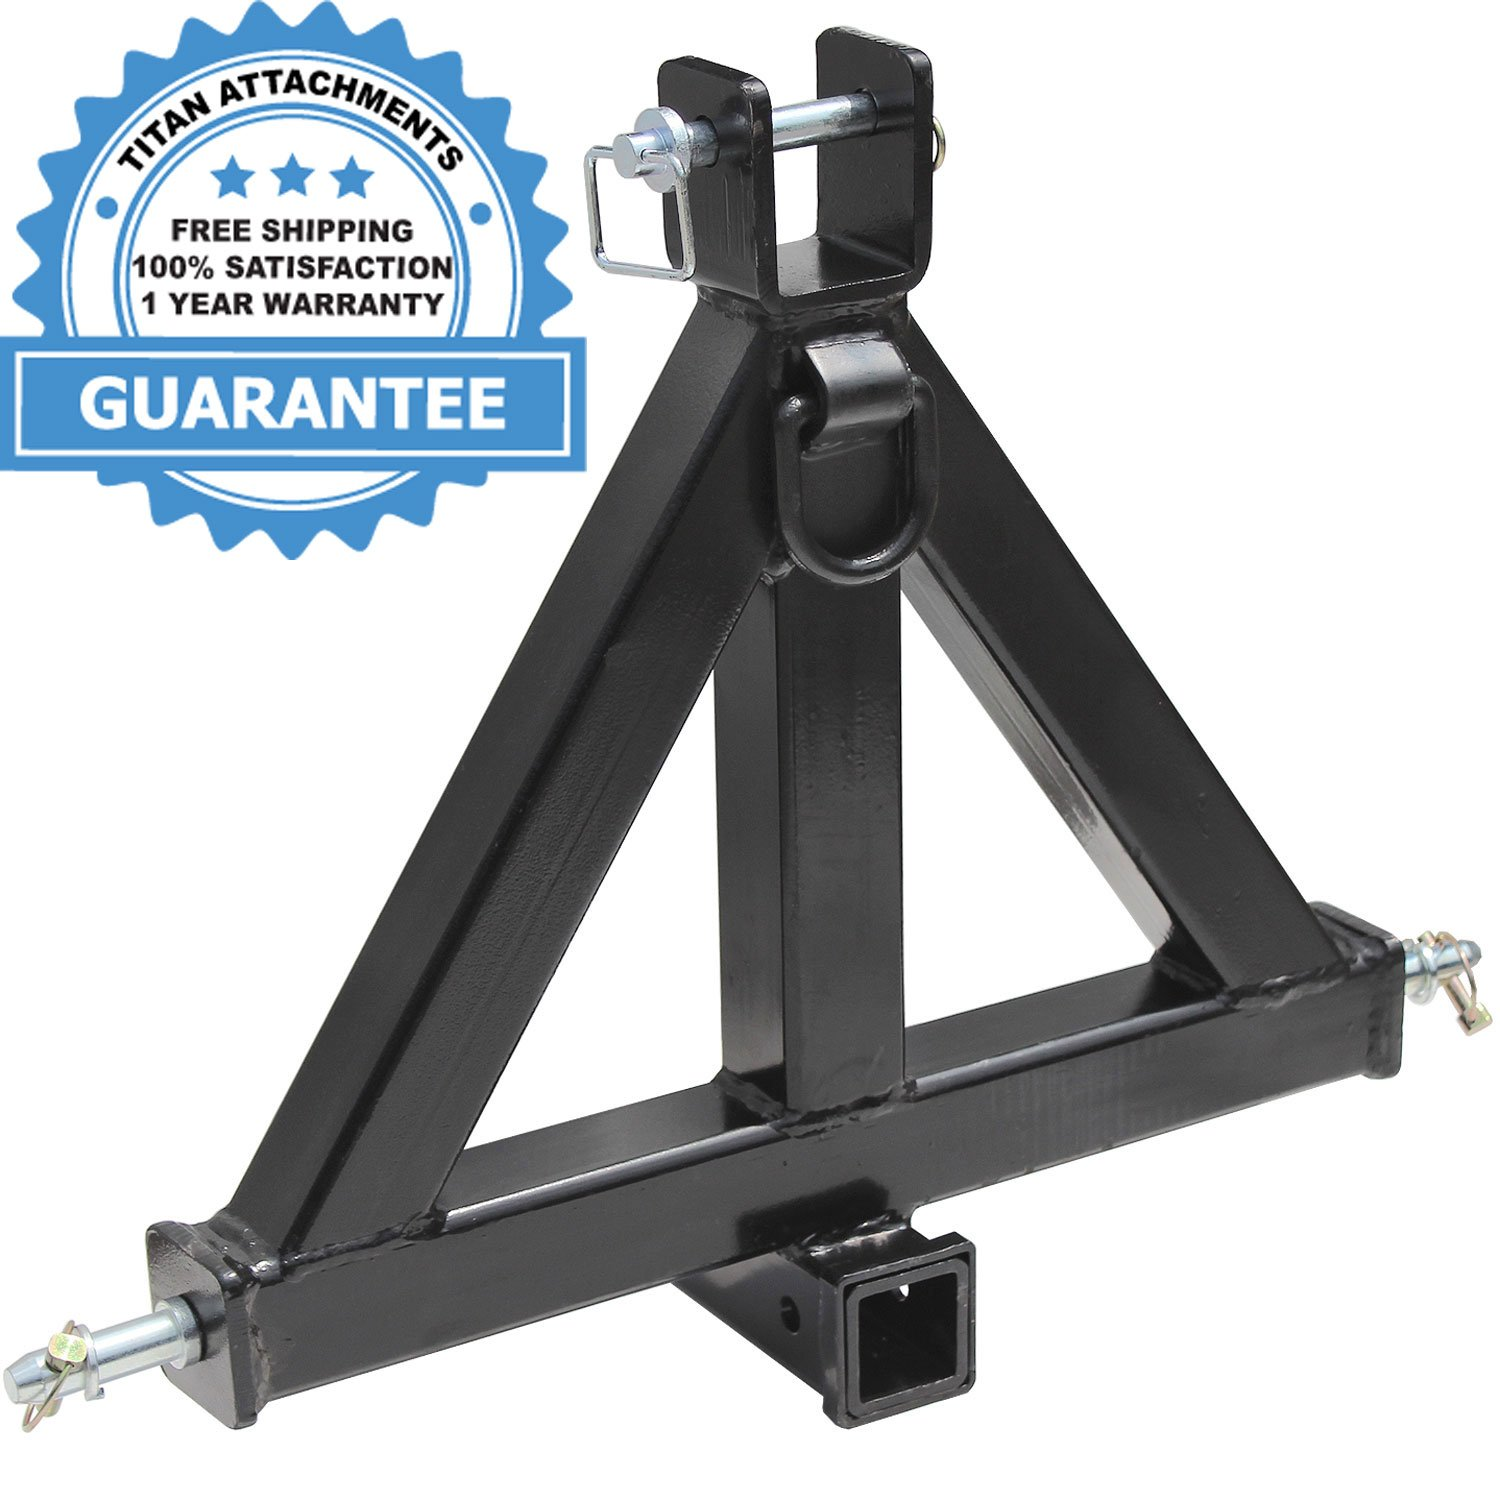 Heavy Duty 3 Point 2'' Receiver Trailer Hitch Category 1Tractor Tow Drawbar Pull by Titan Attachments